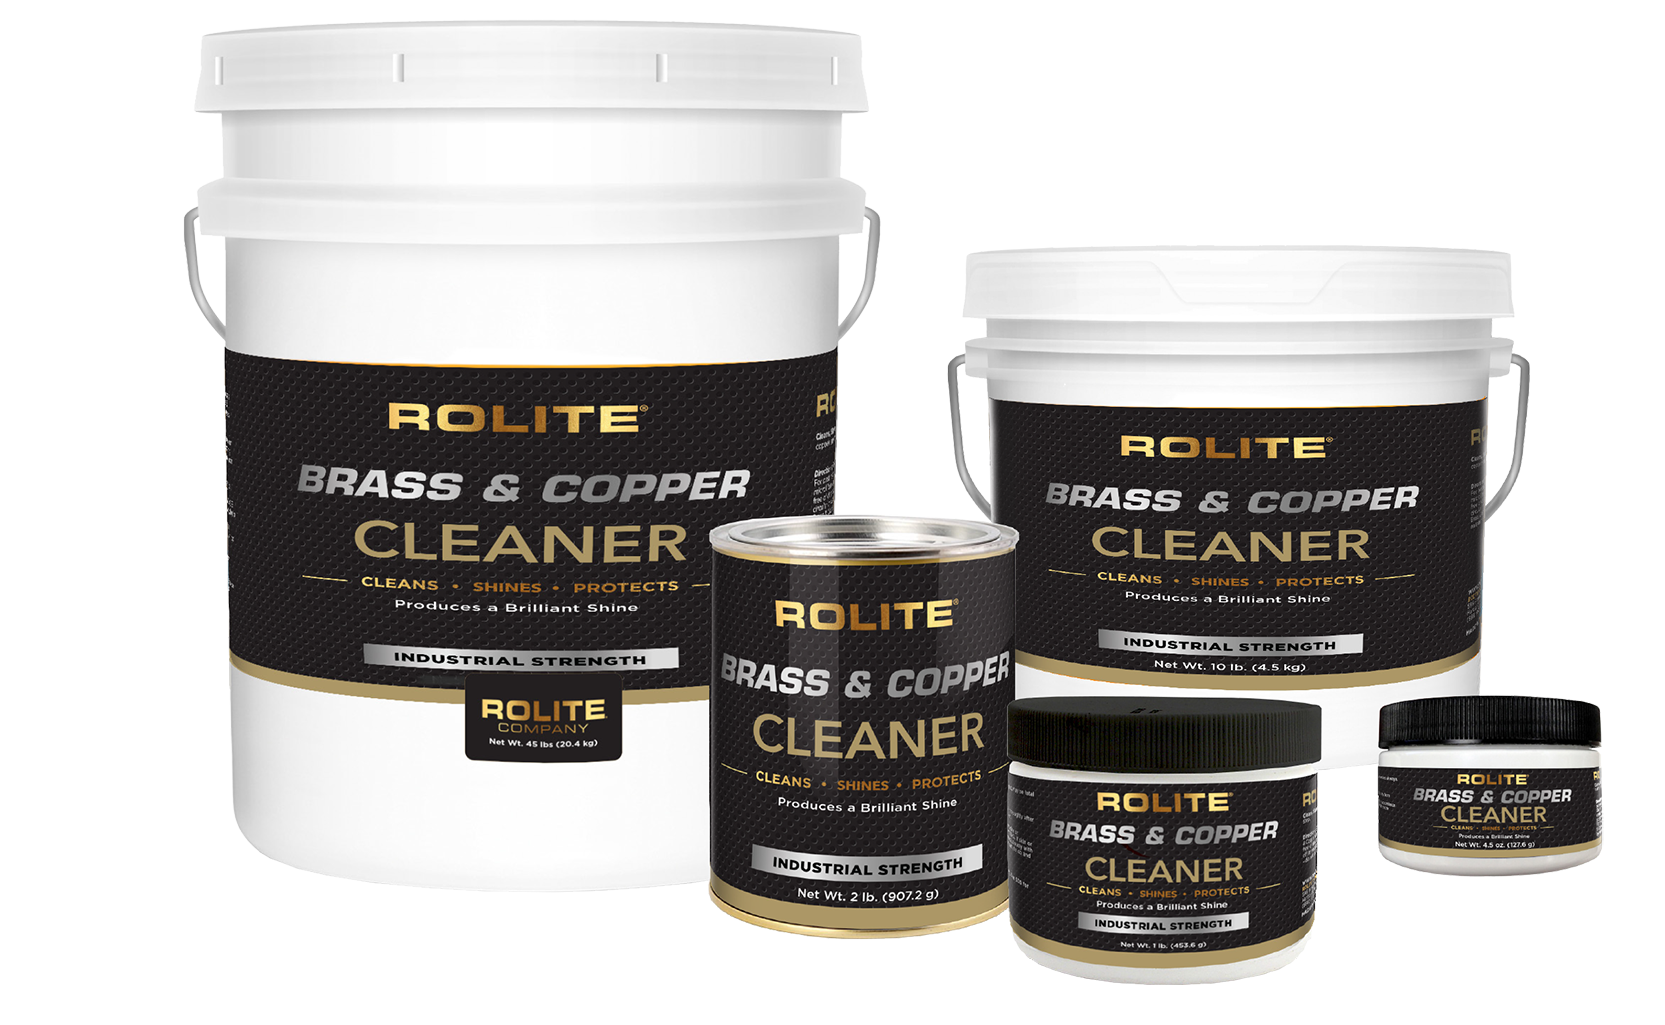 Rolite Brass & Copper Cleaner